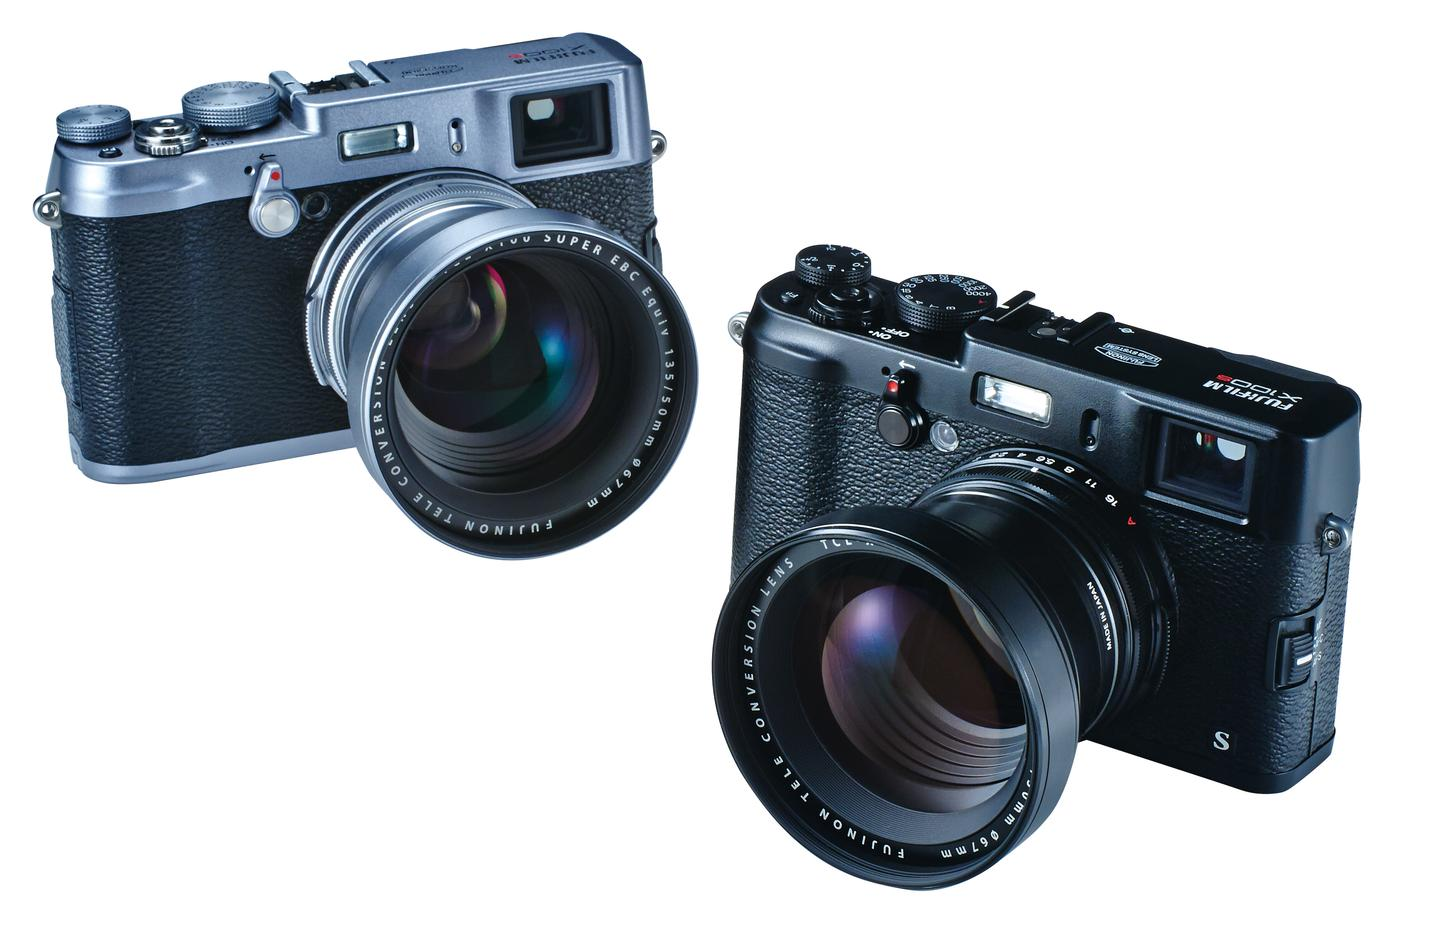 The Fujifilm TCL-X100 tele-conversion lens has been designed for the X100 and X100S